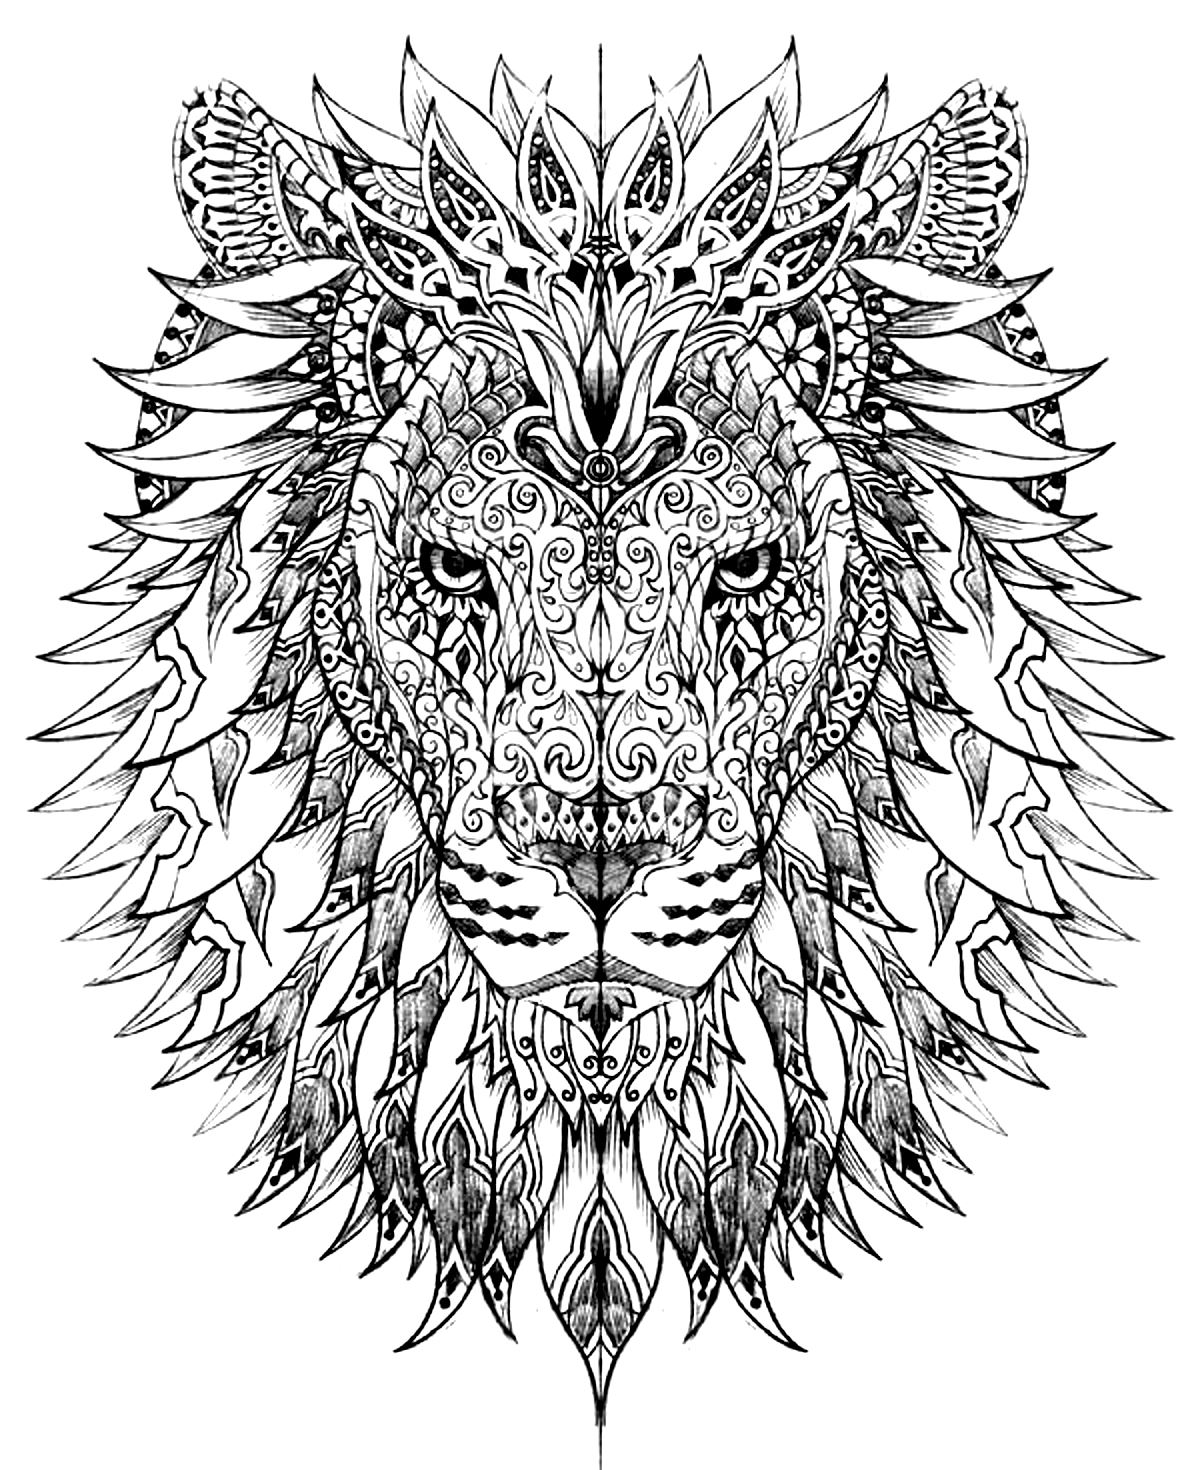 lion head drawn with very smart and harmonious patterns from the gallery animals - Difficult Coloring Pages